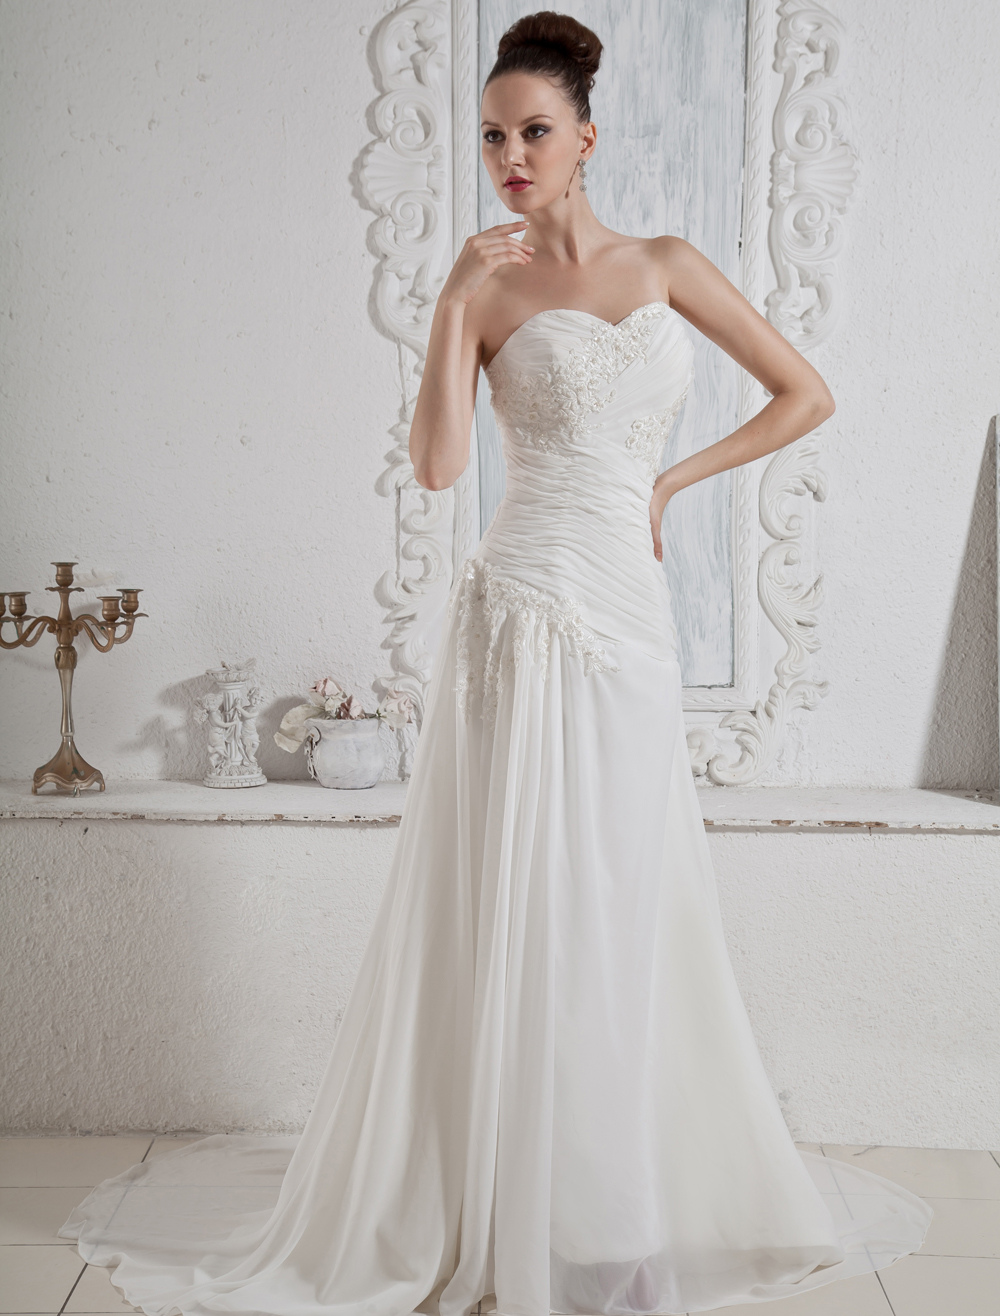 Ivory Satin Chiffon Wedding Dress With Sweep Train